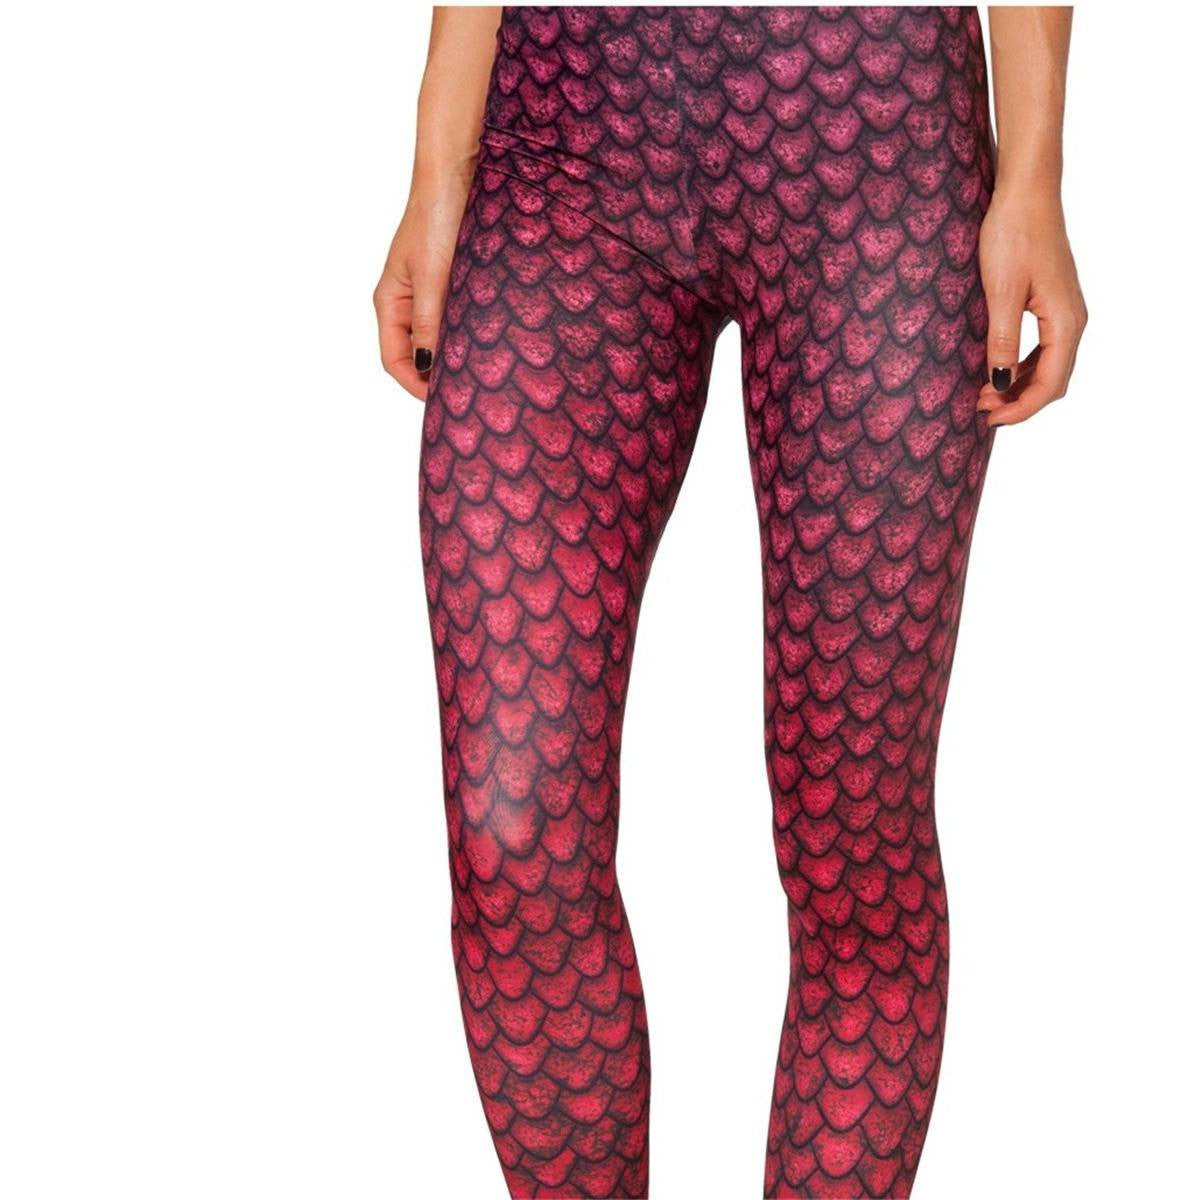 Red Scale Mesh Leggings - Rave Rebel